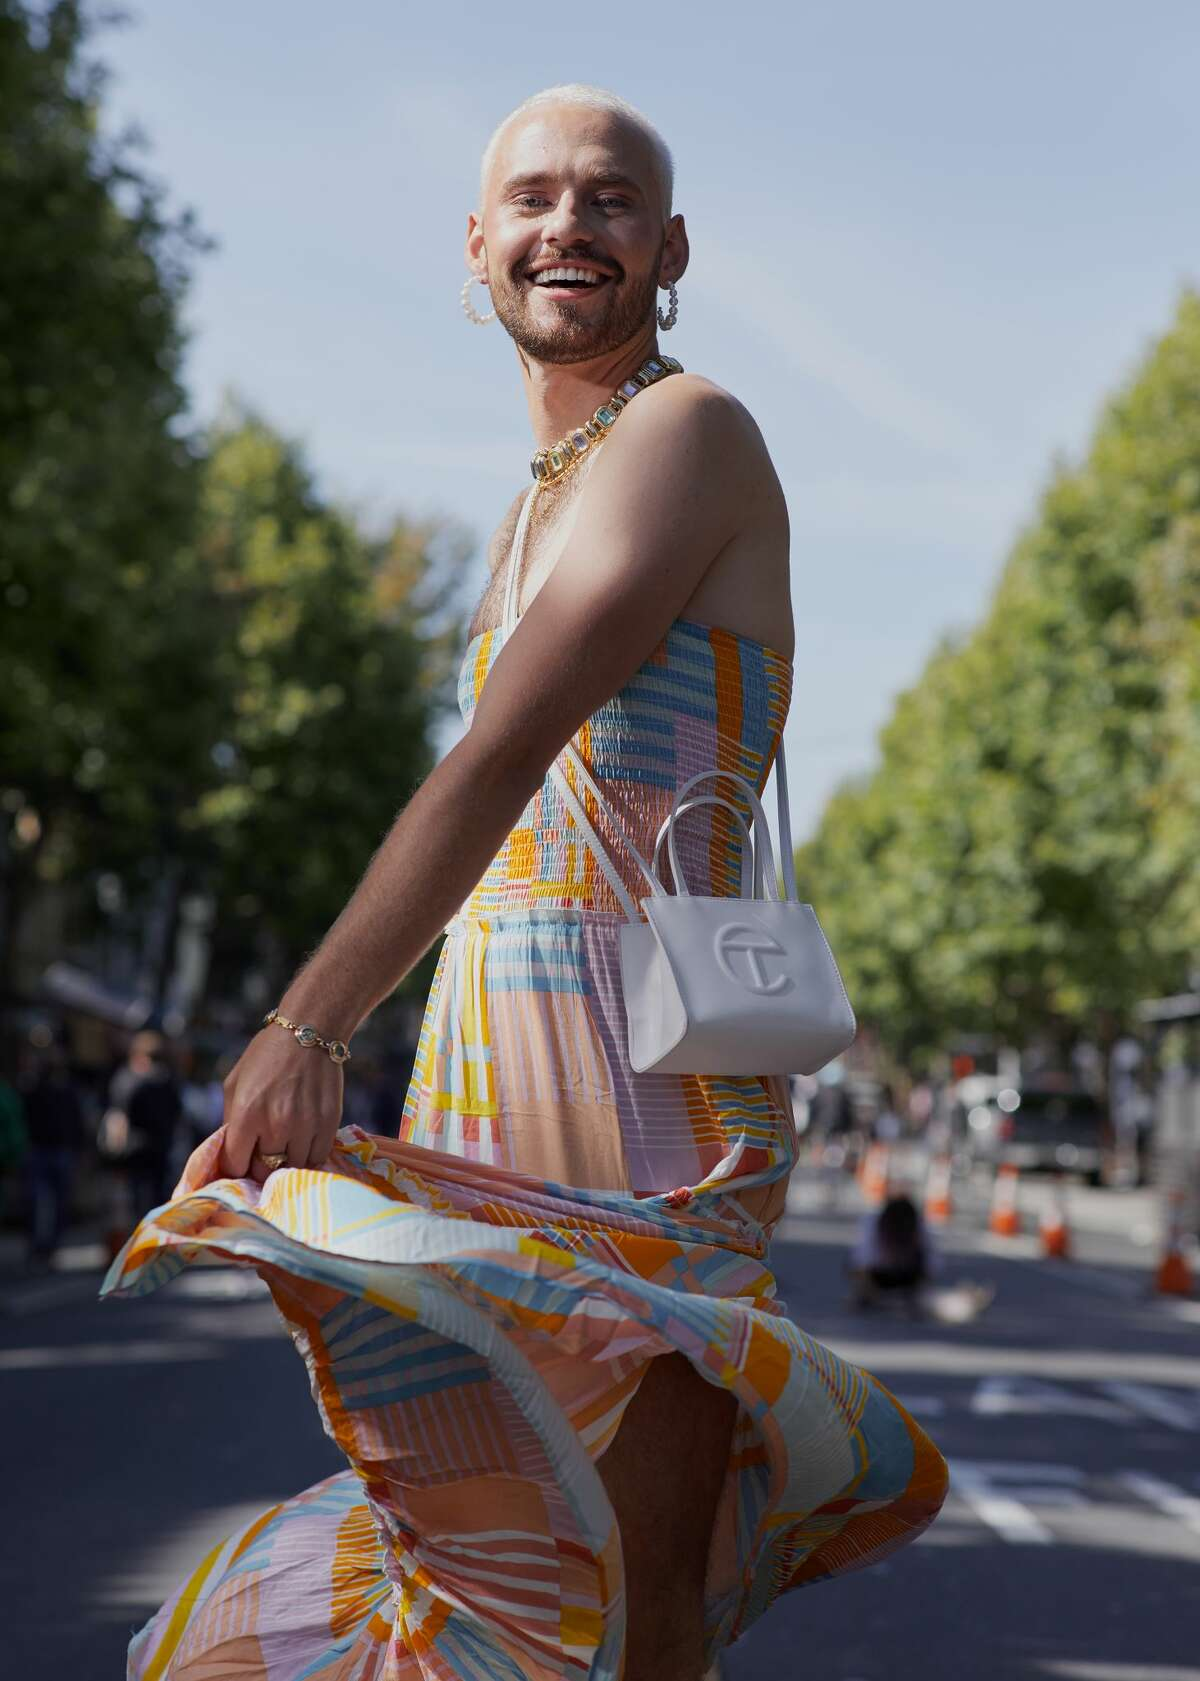 Brendan Dunlap, a substitute teacher, in the Mission District of San Francisco on June 5, 2021. Gender fluidity enters its next phase as men increasingly step out in skirts and frocks. (Peter Prato/The New York Times)